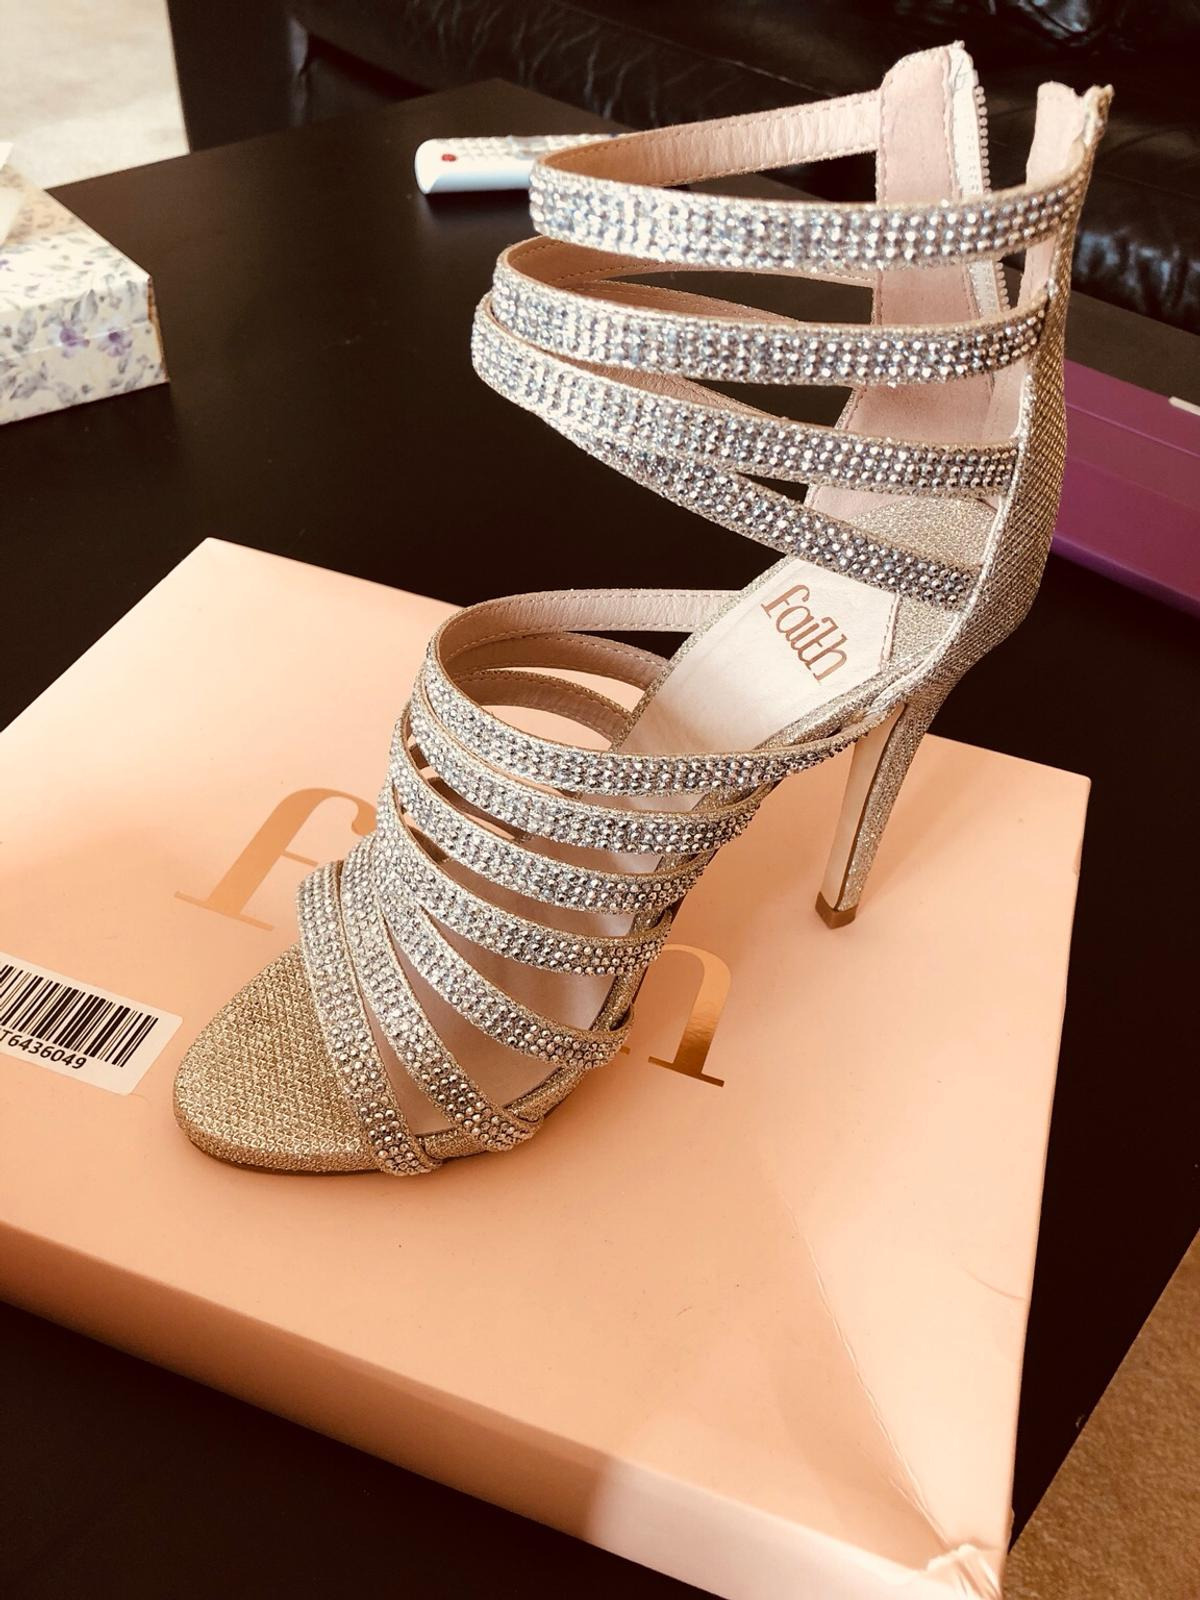 eefd19fe912 Faith silver heeled sandals in HP3 Dacorum for £20.00 for sale - Shpock